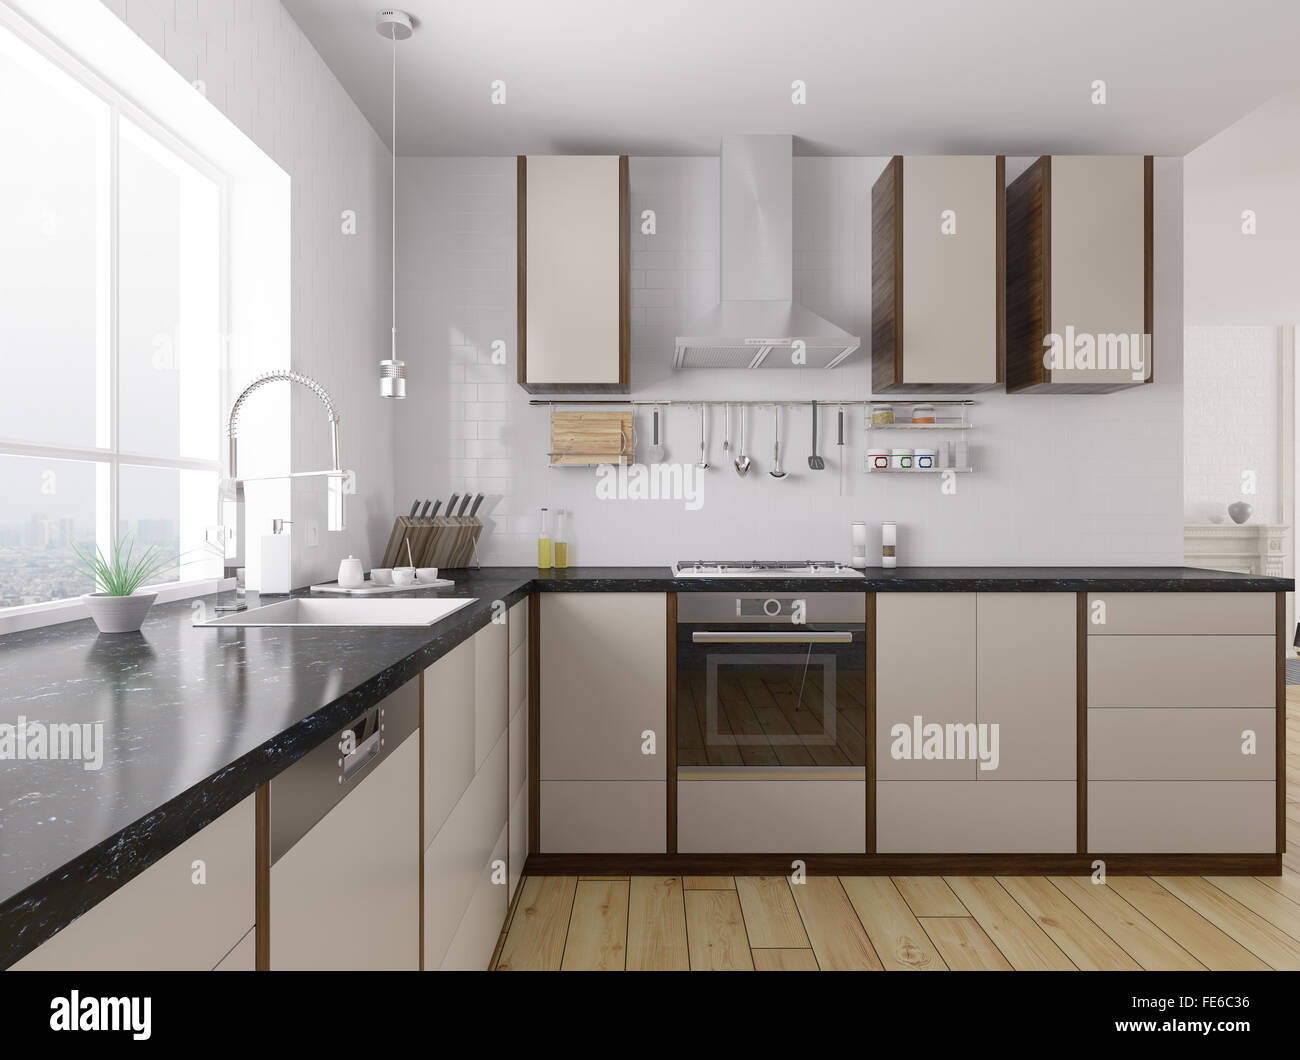 Modern Kitchen With Black Granite Counter Interior 3d Rendering Stock Photo Alamy